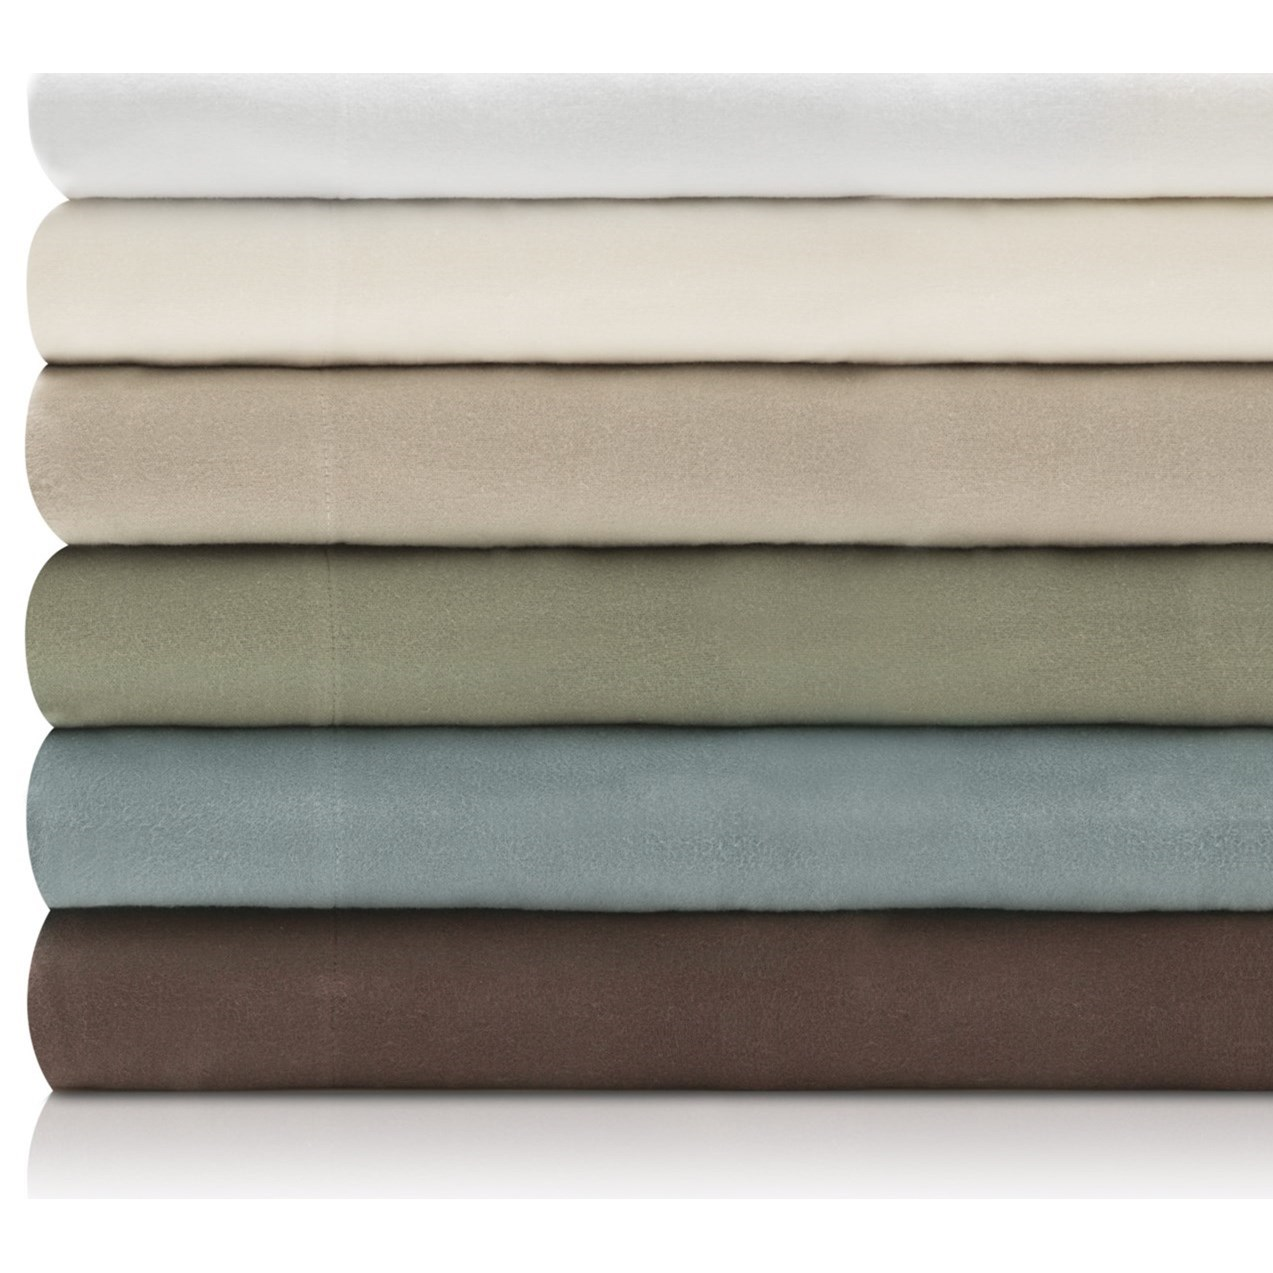 Malouf Portuguese Flannel Cal King Woven™ Portuguese Flannel Sheet Set - Item Number: WO19CKPAFS